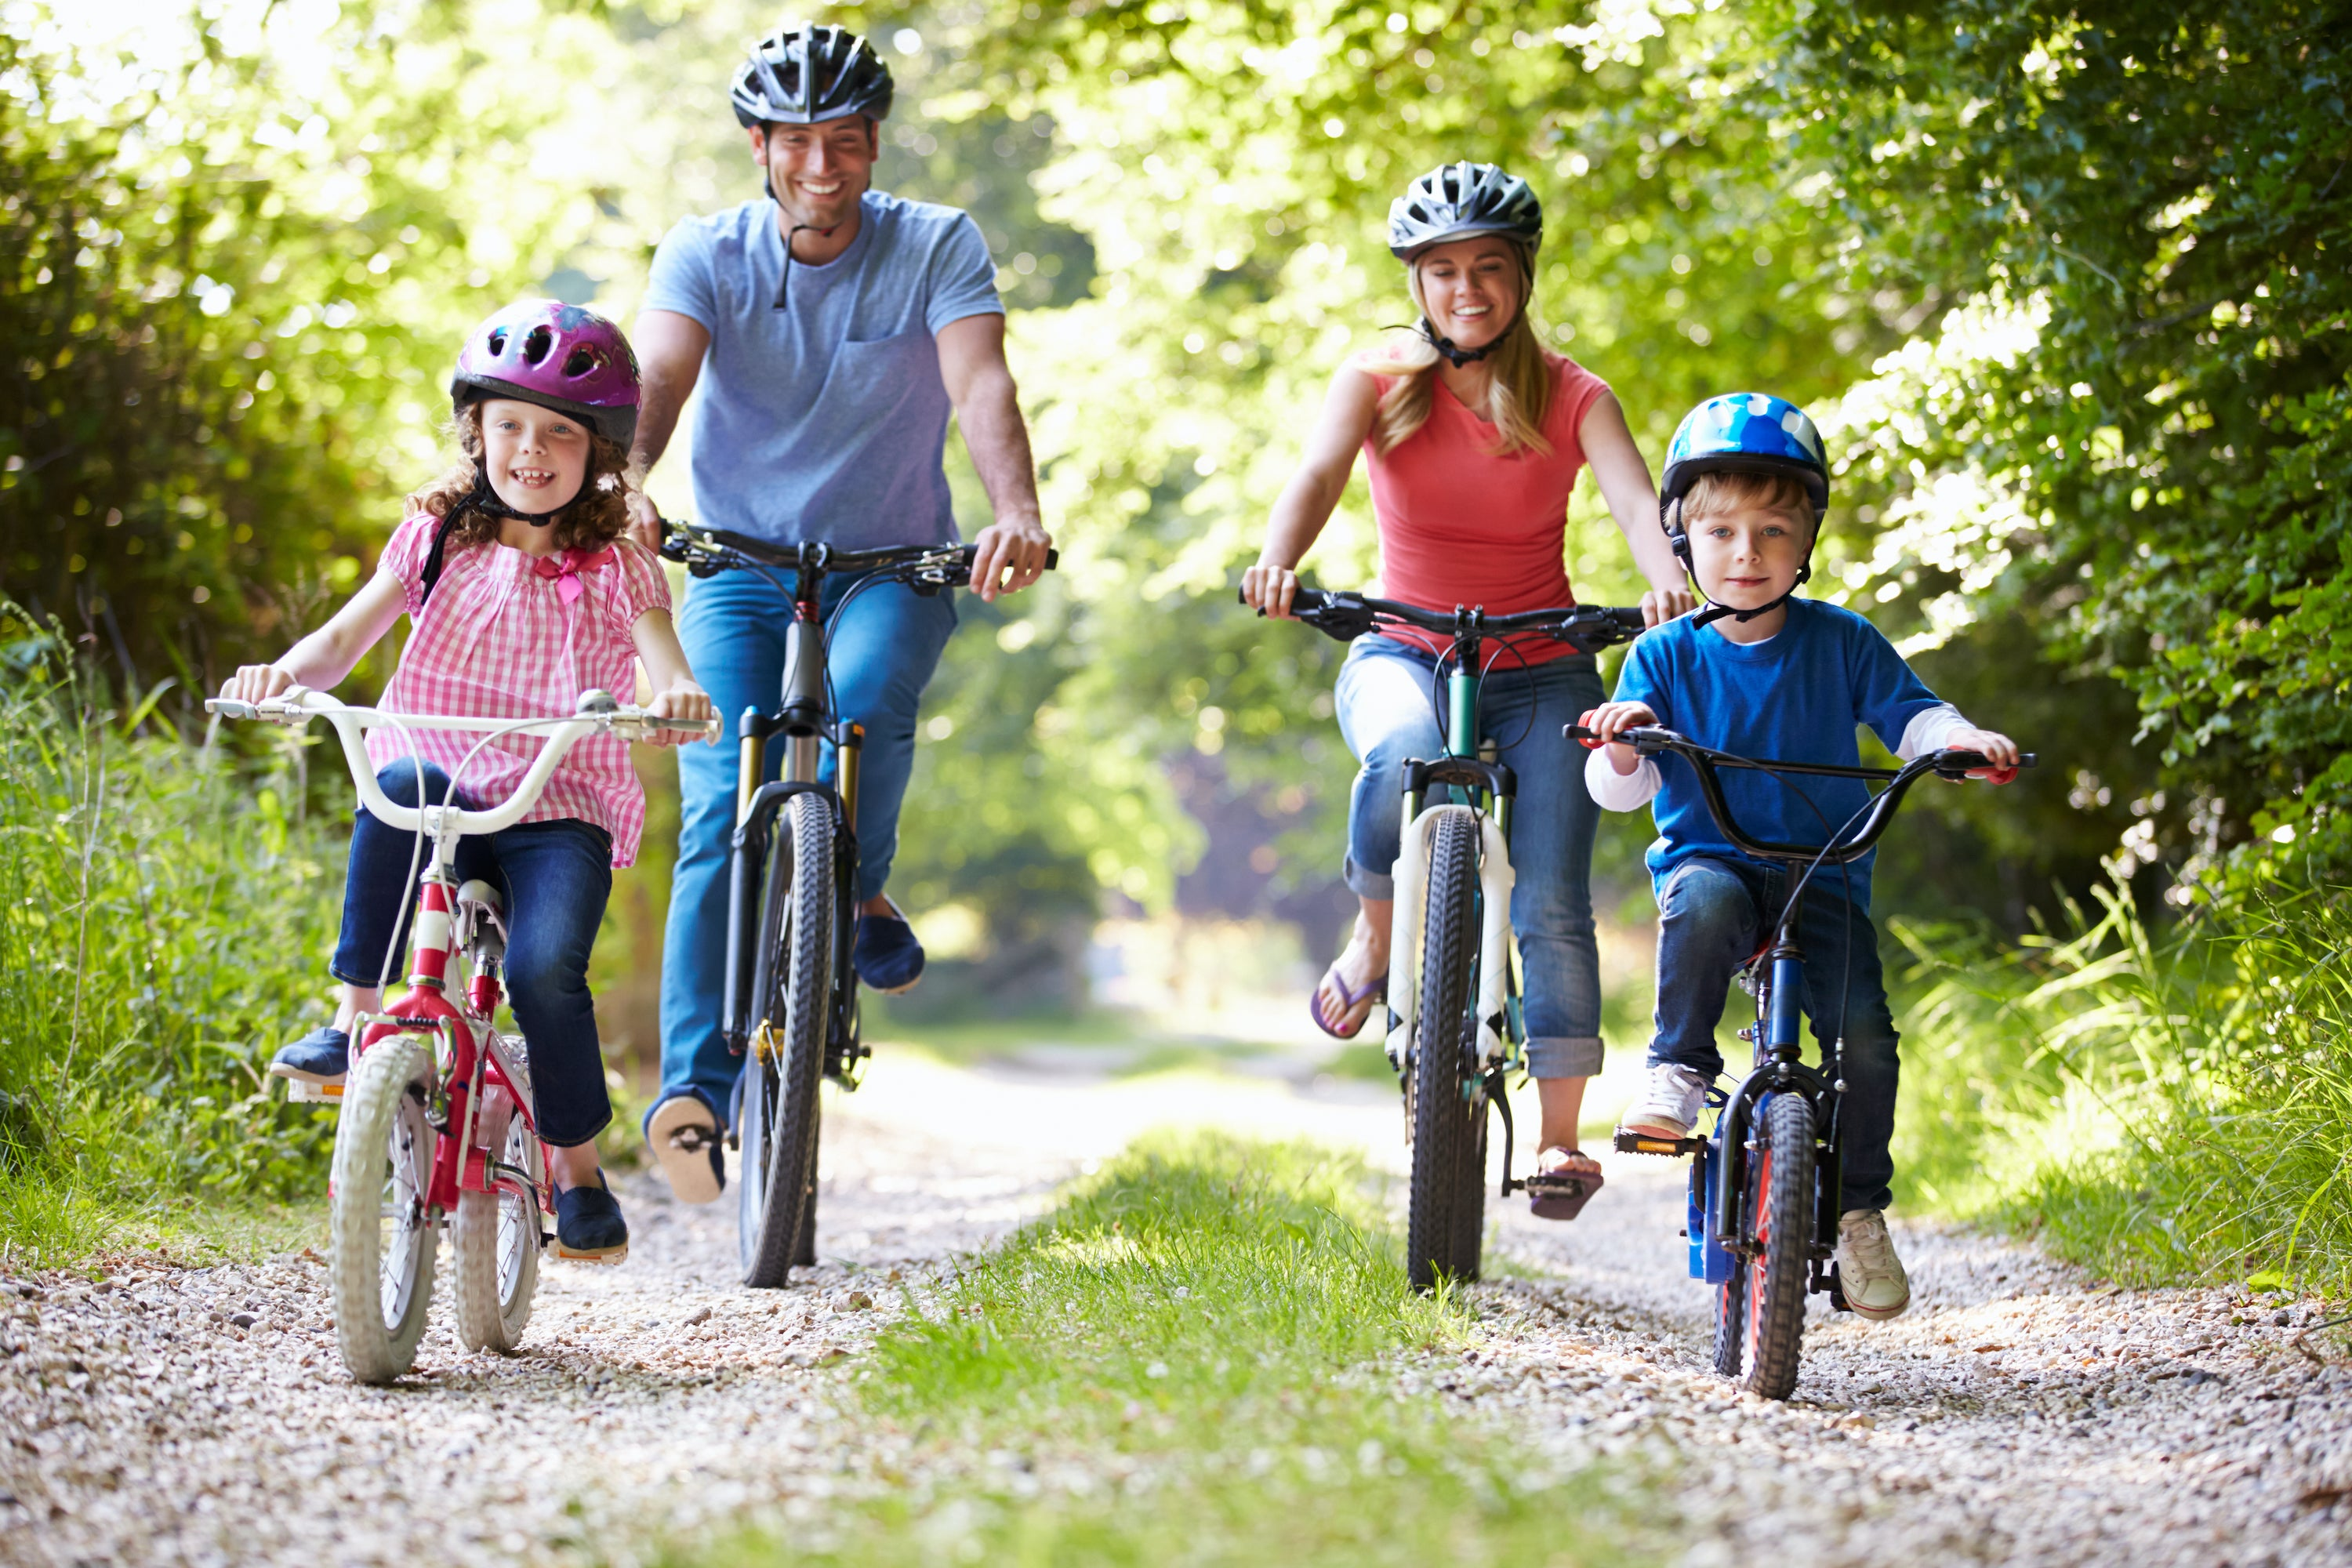 family of four on bikes wearing helmets riding down path through woods